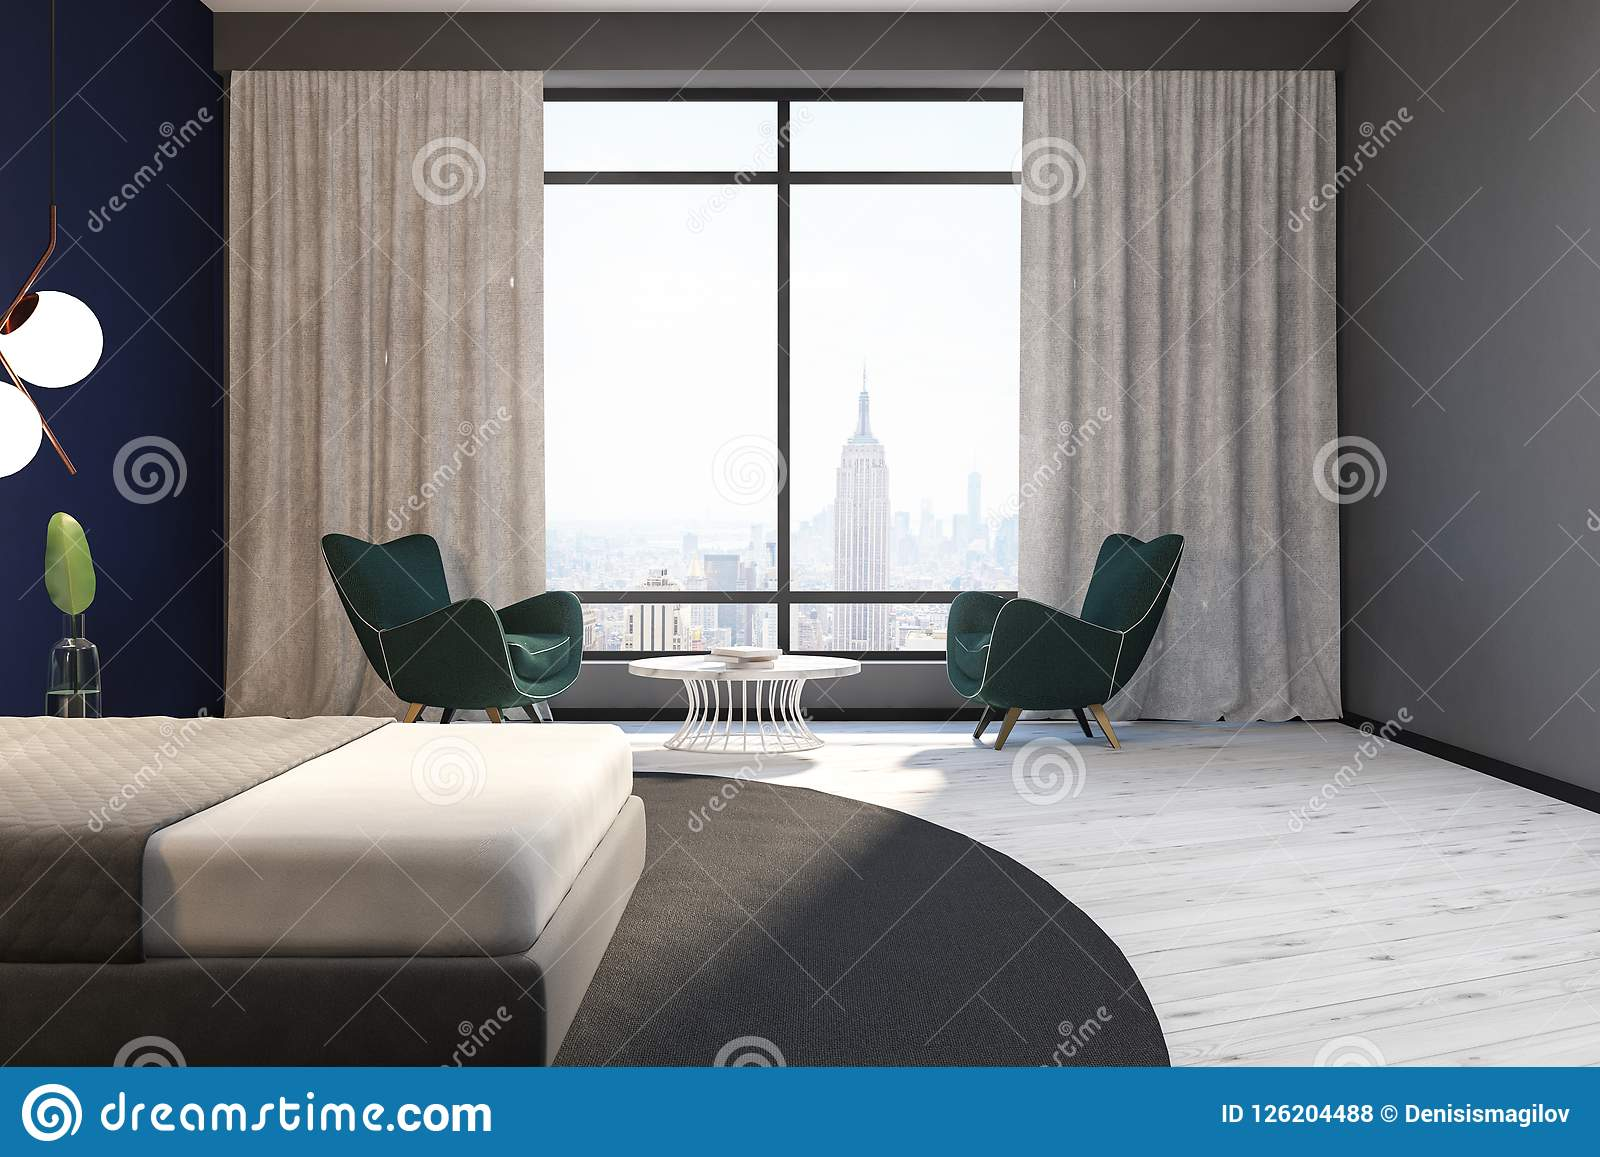 Blue And Gray Bedroom Interior Armchairs Stock Illustration Illustration Of Large Hotel 126204488